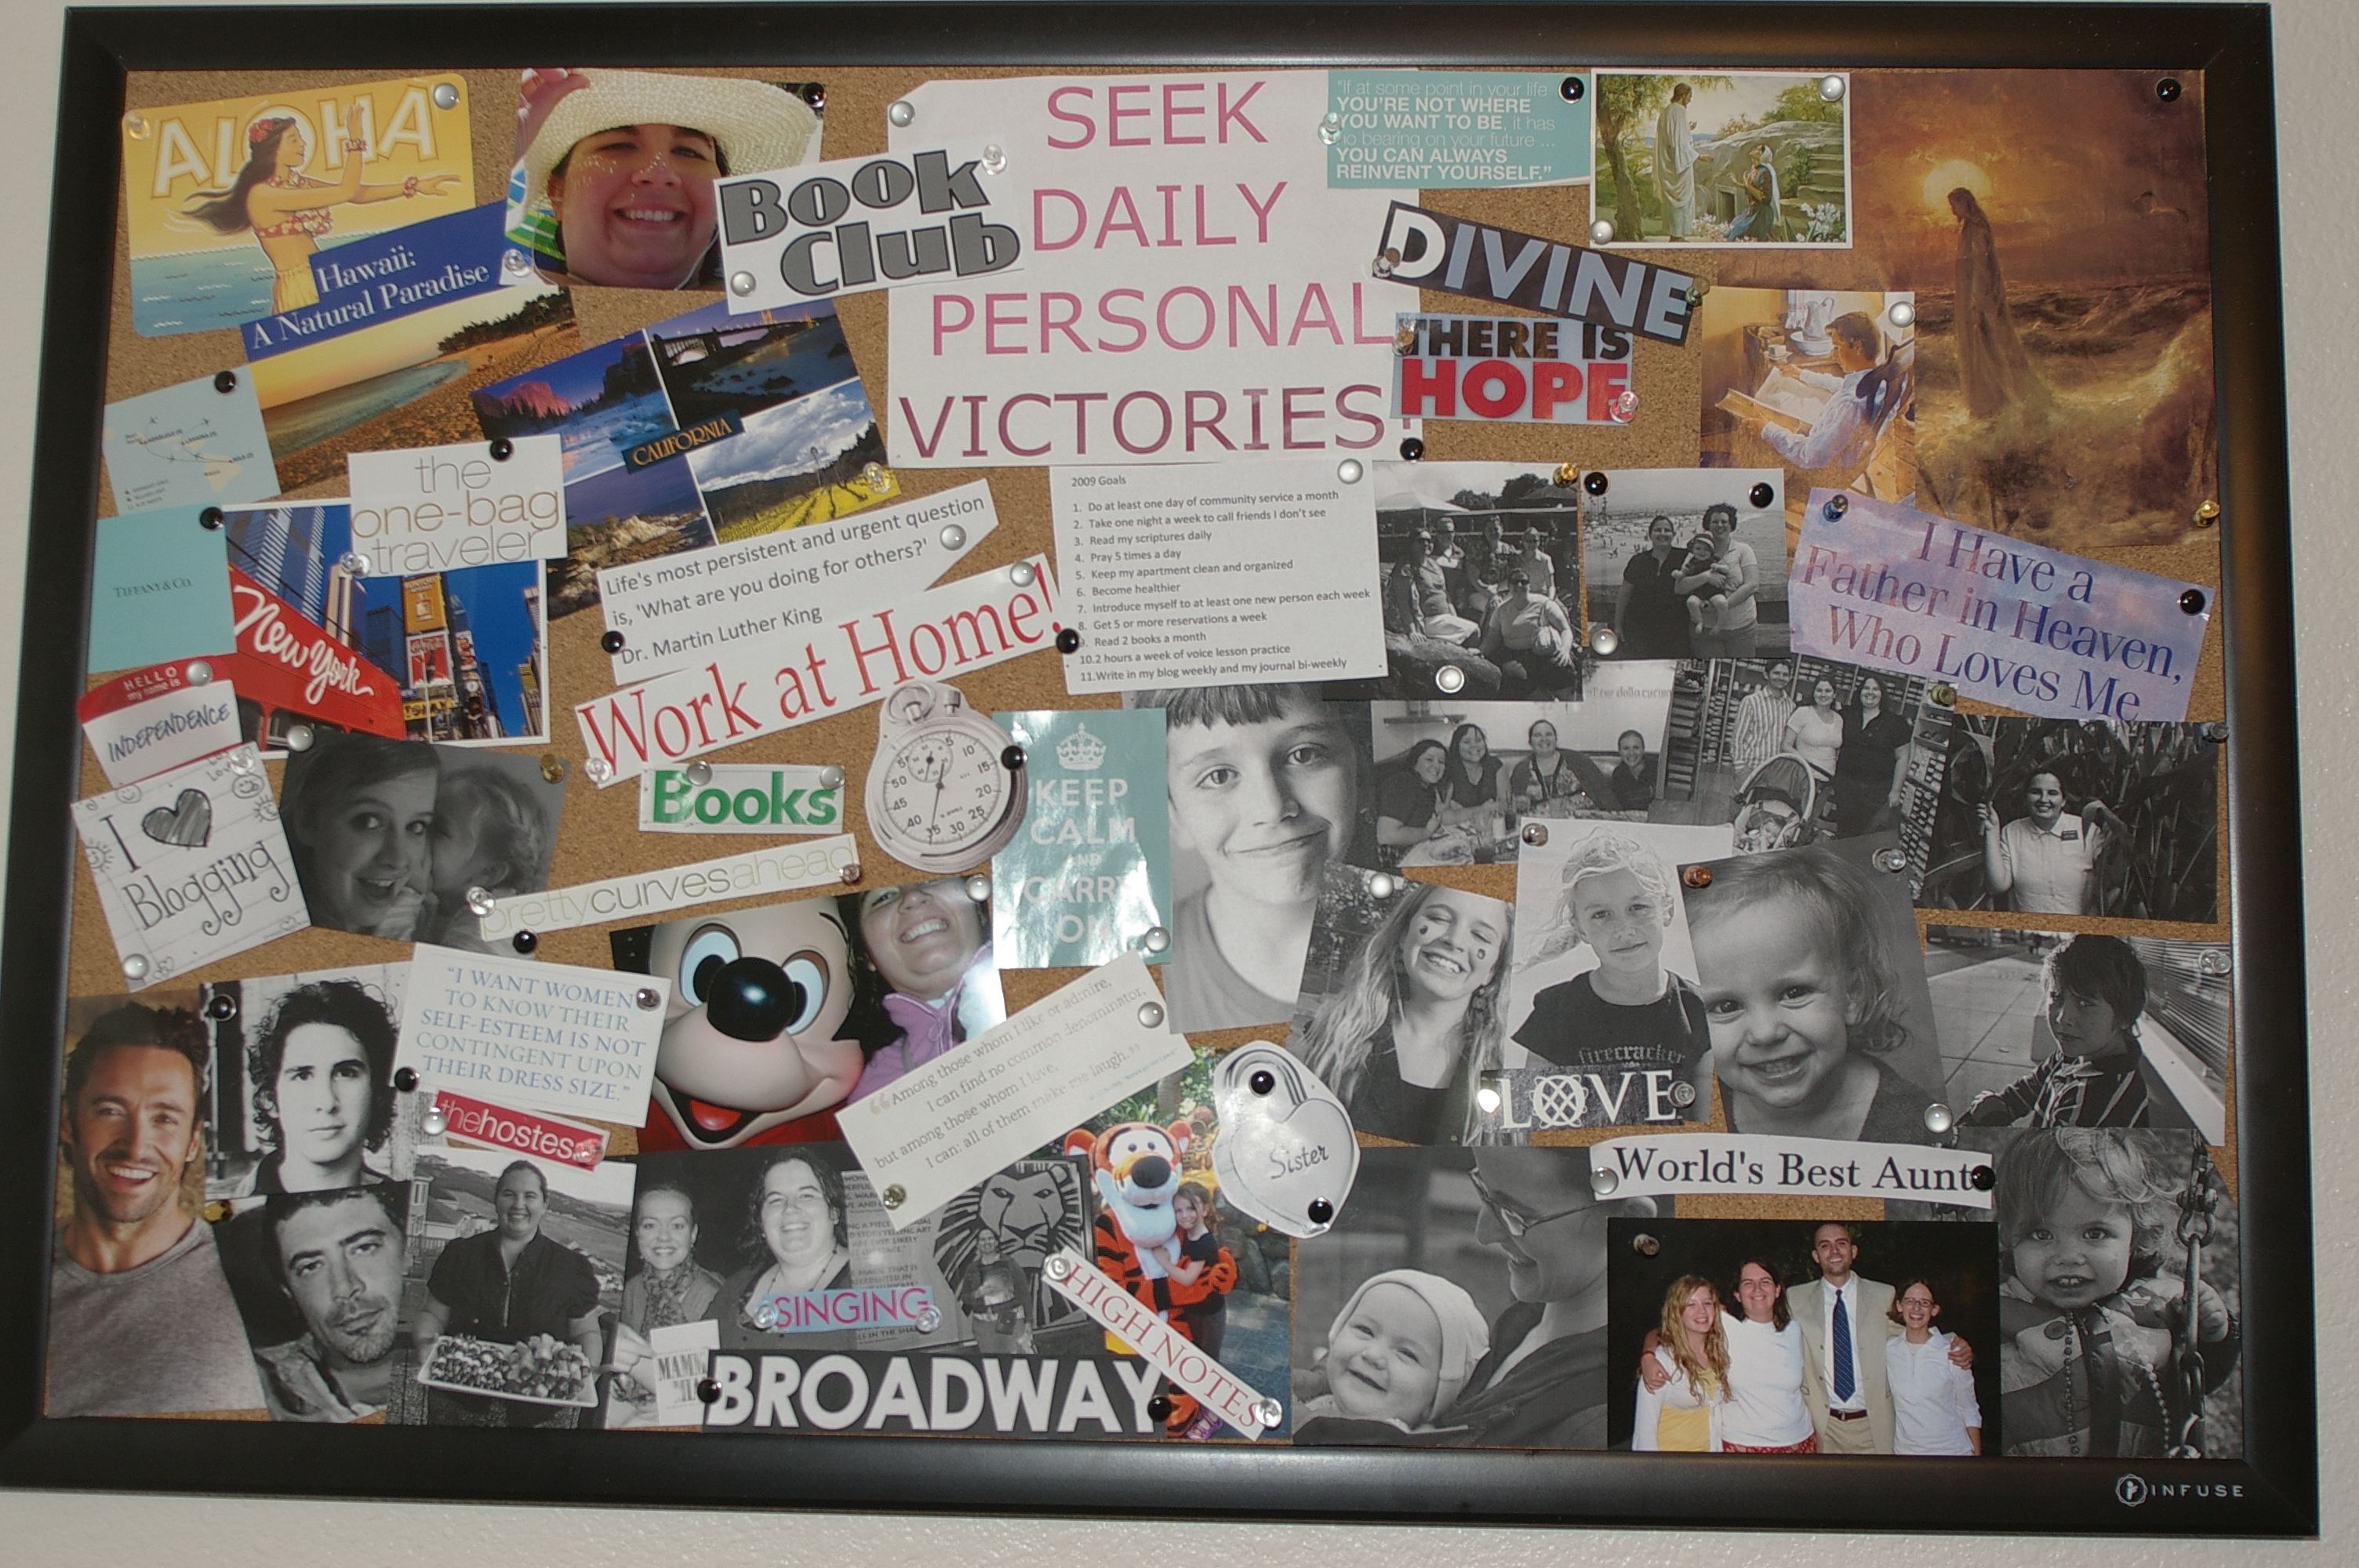 This is the personal board.